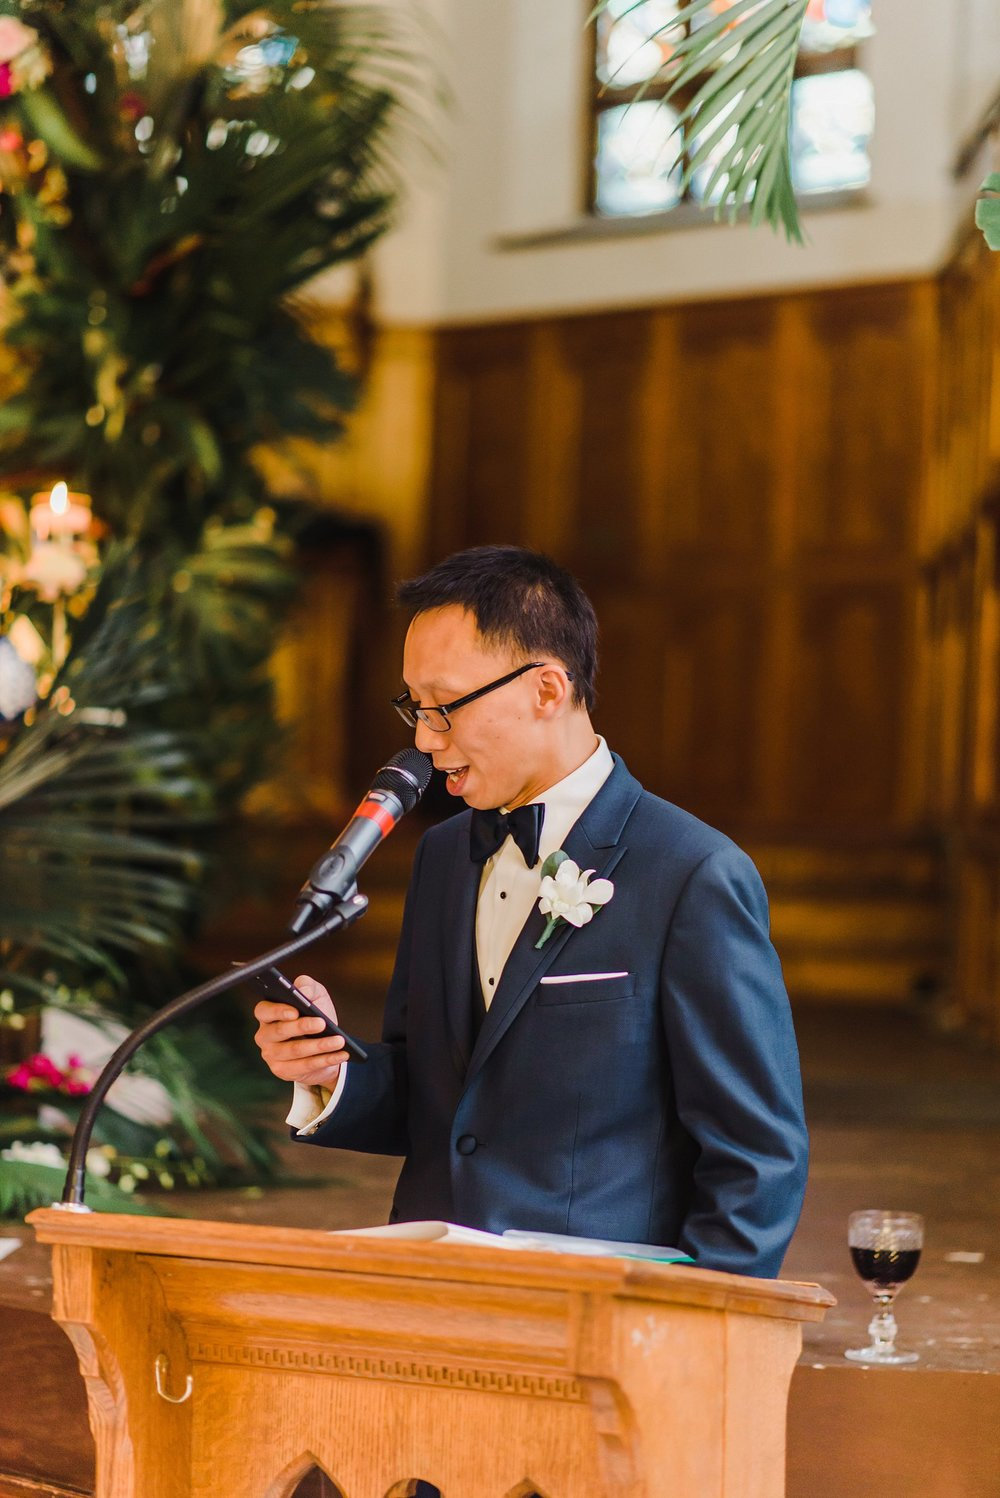 light airy indie fine art ottawa wedding photographer | Ali and Batoul Photography_1040.jpg